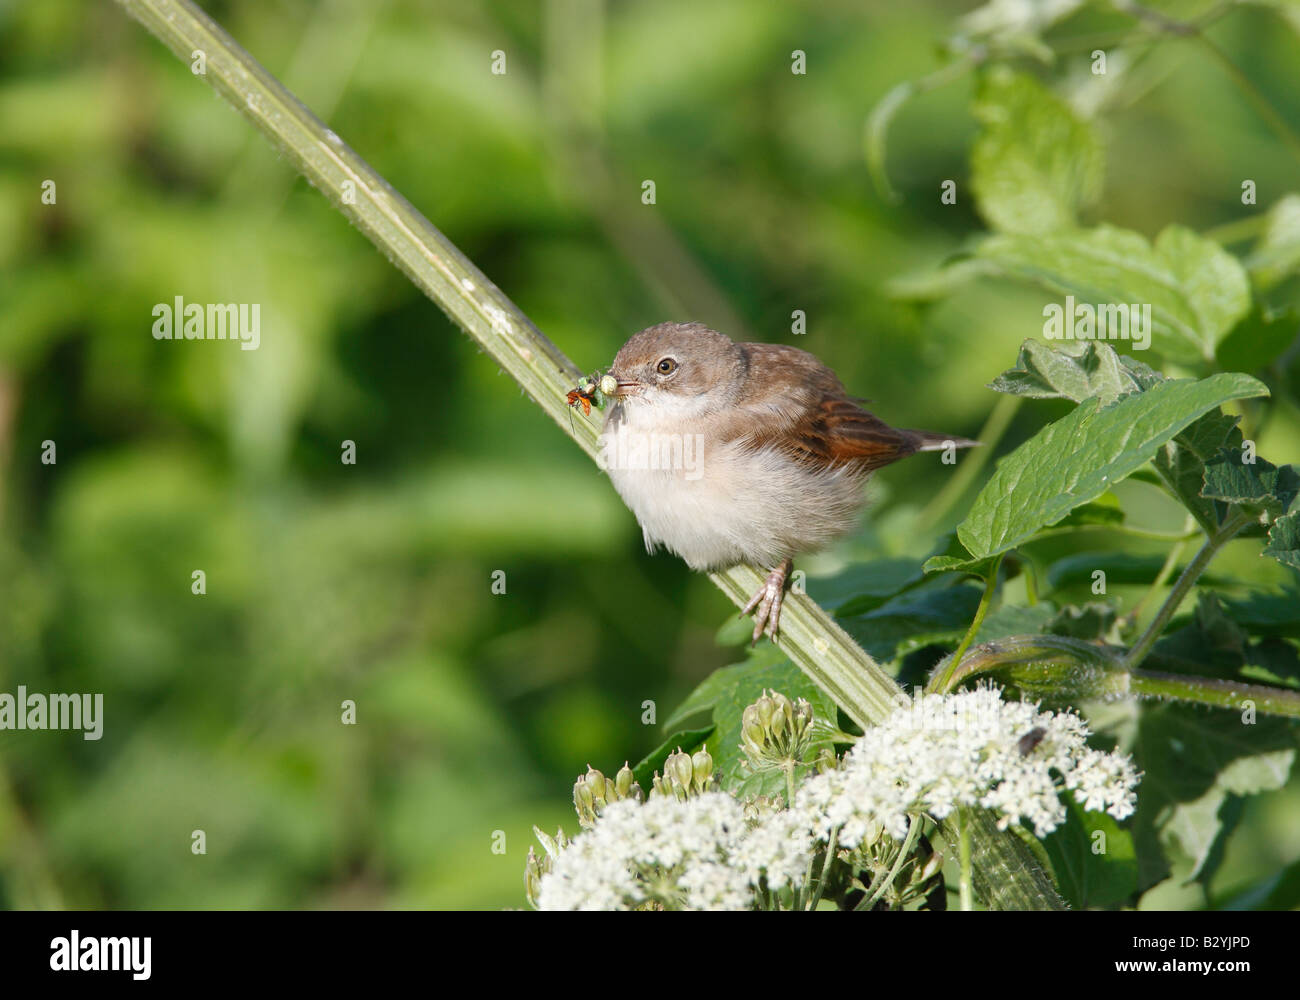 Whitethroat collecting food for nestlings in nearby nest - Stock Image